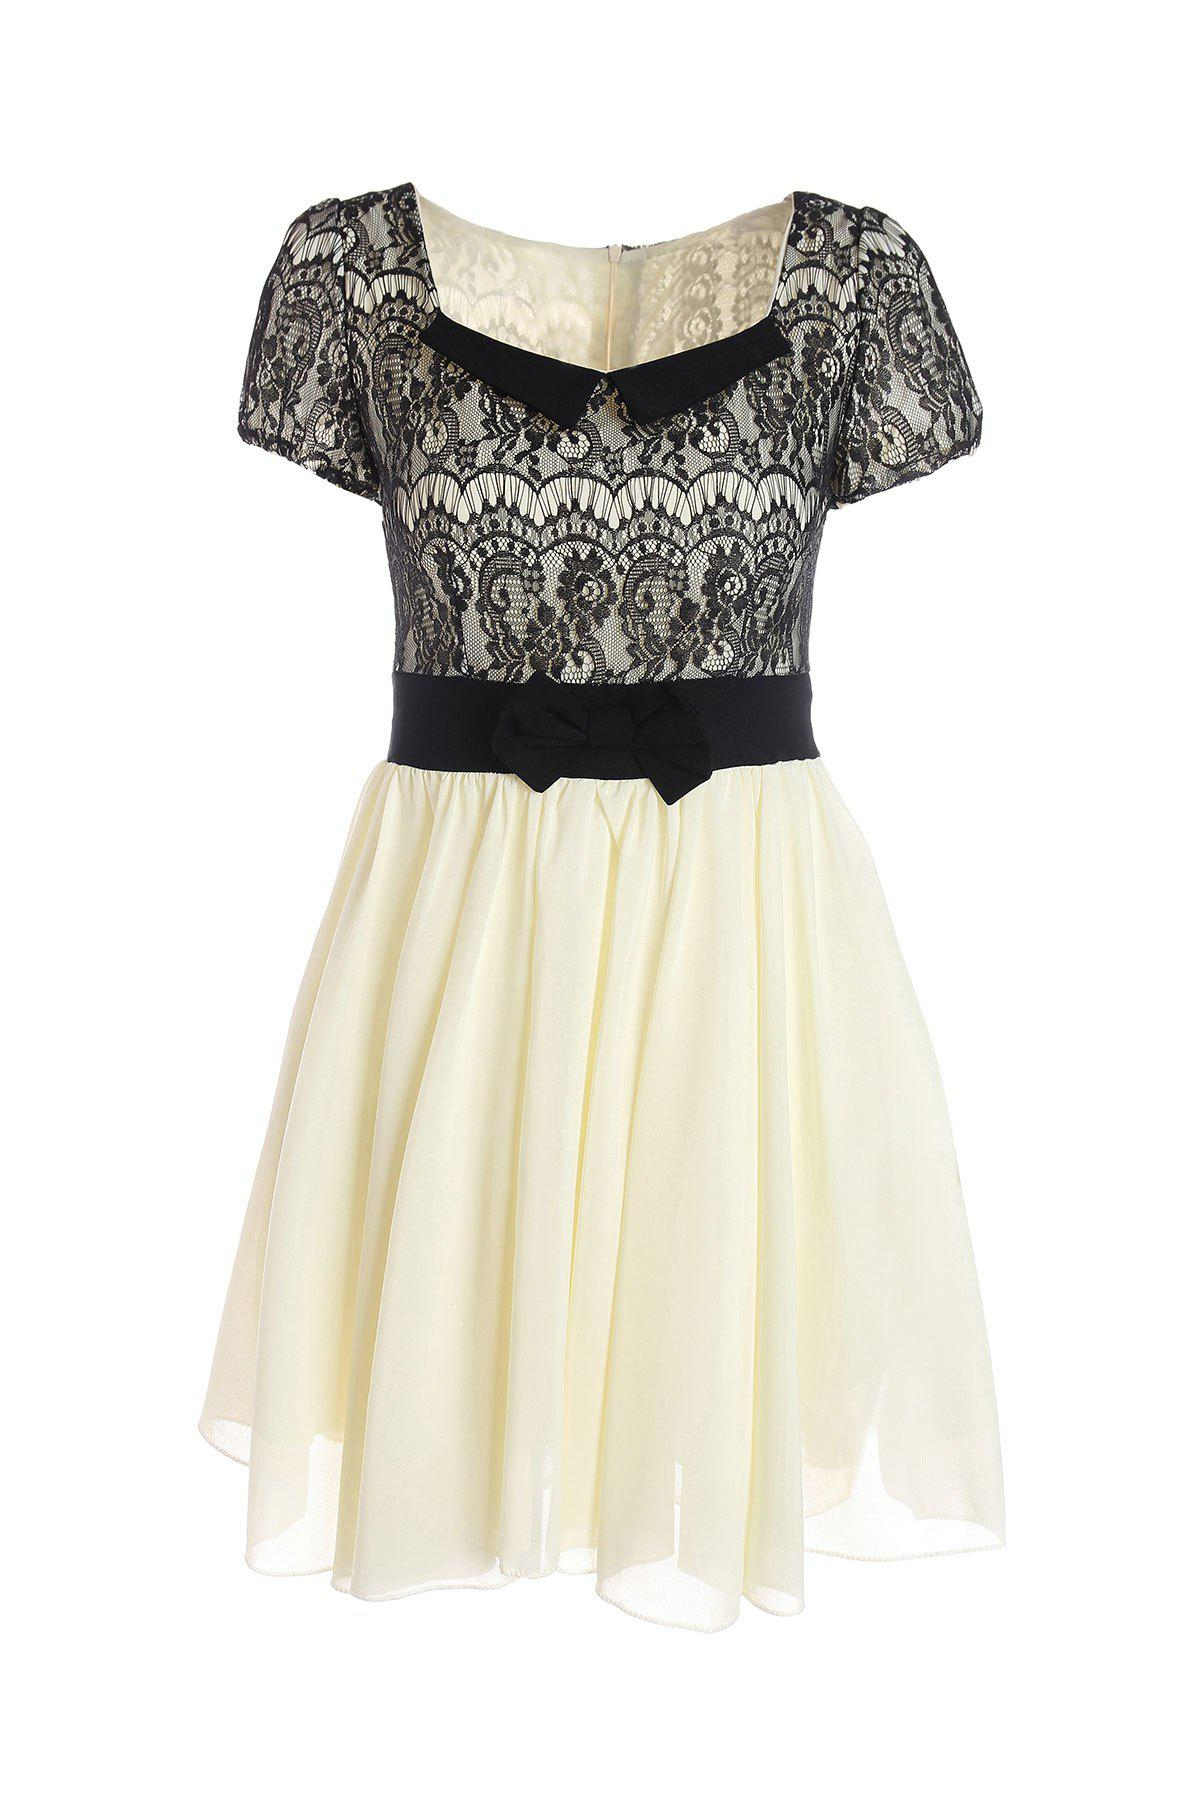 Fashion Vintage Sweetheart Neckline Lace Splicing Bow Short Sleeves Women's Dress